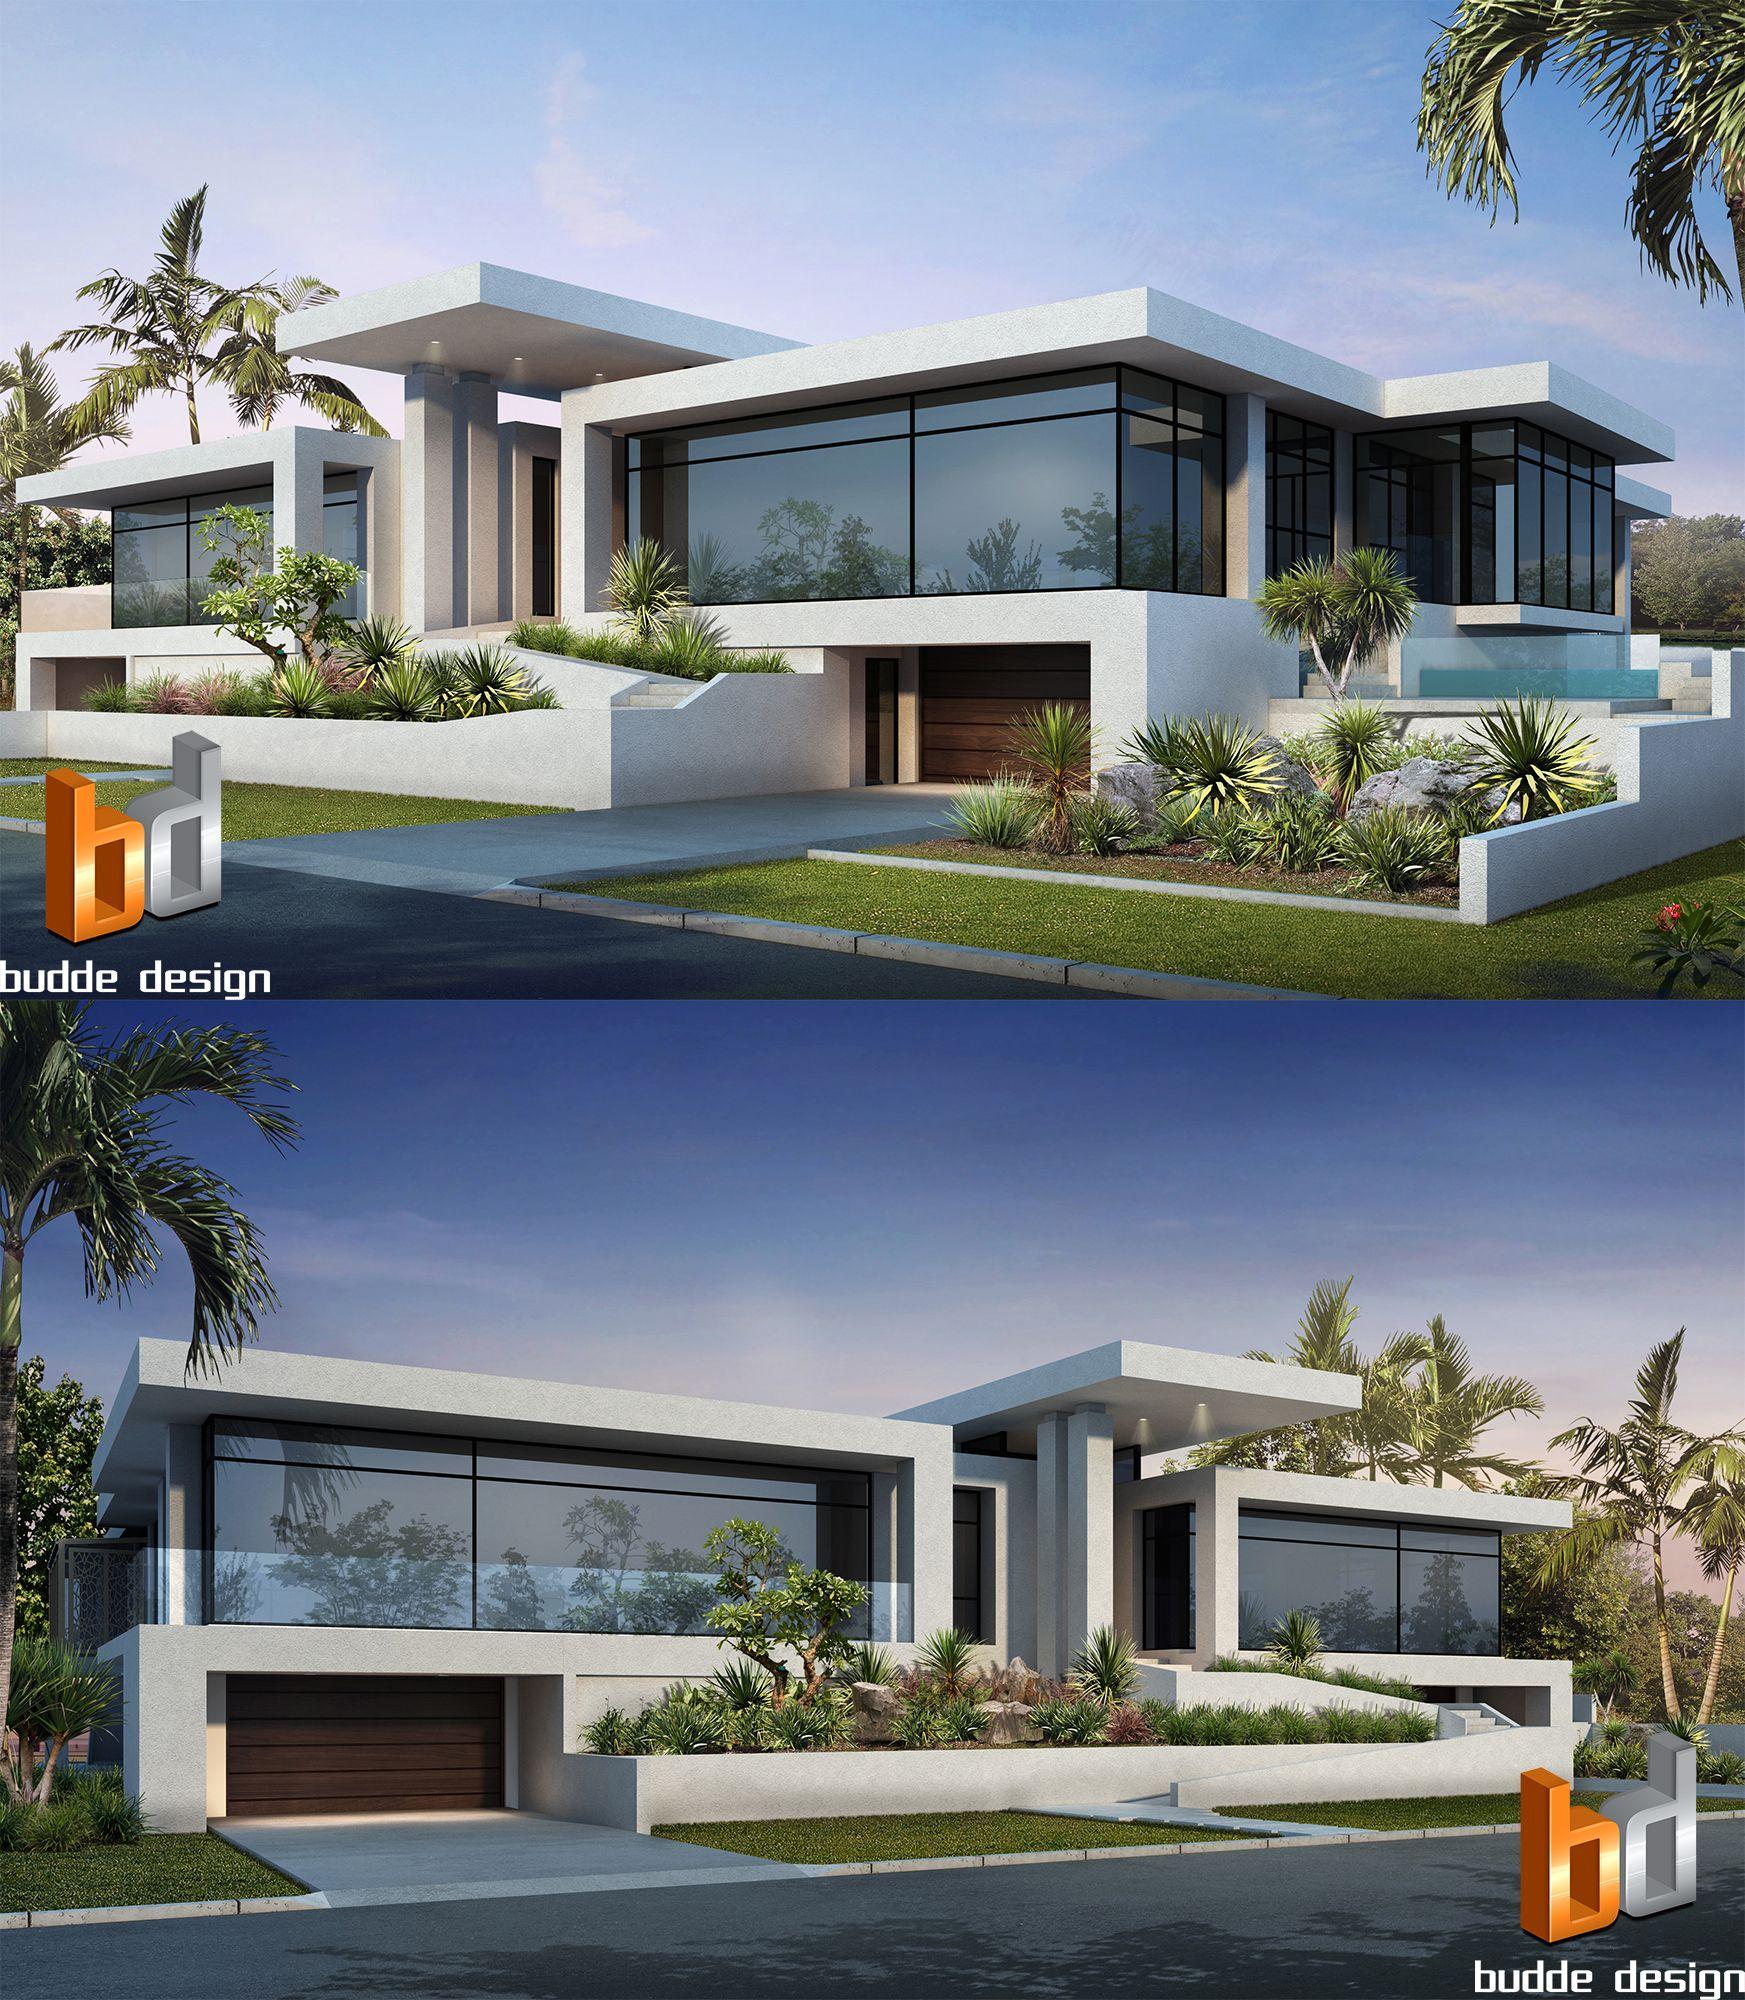 3D Rendering Front Facade Of A Luxury Home. Anglers